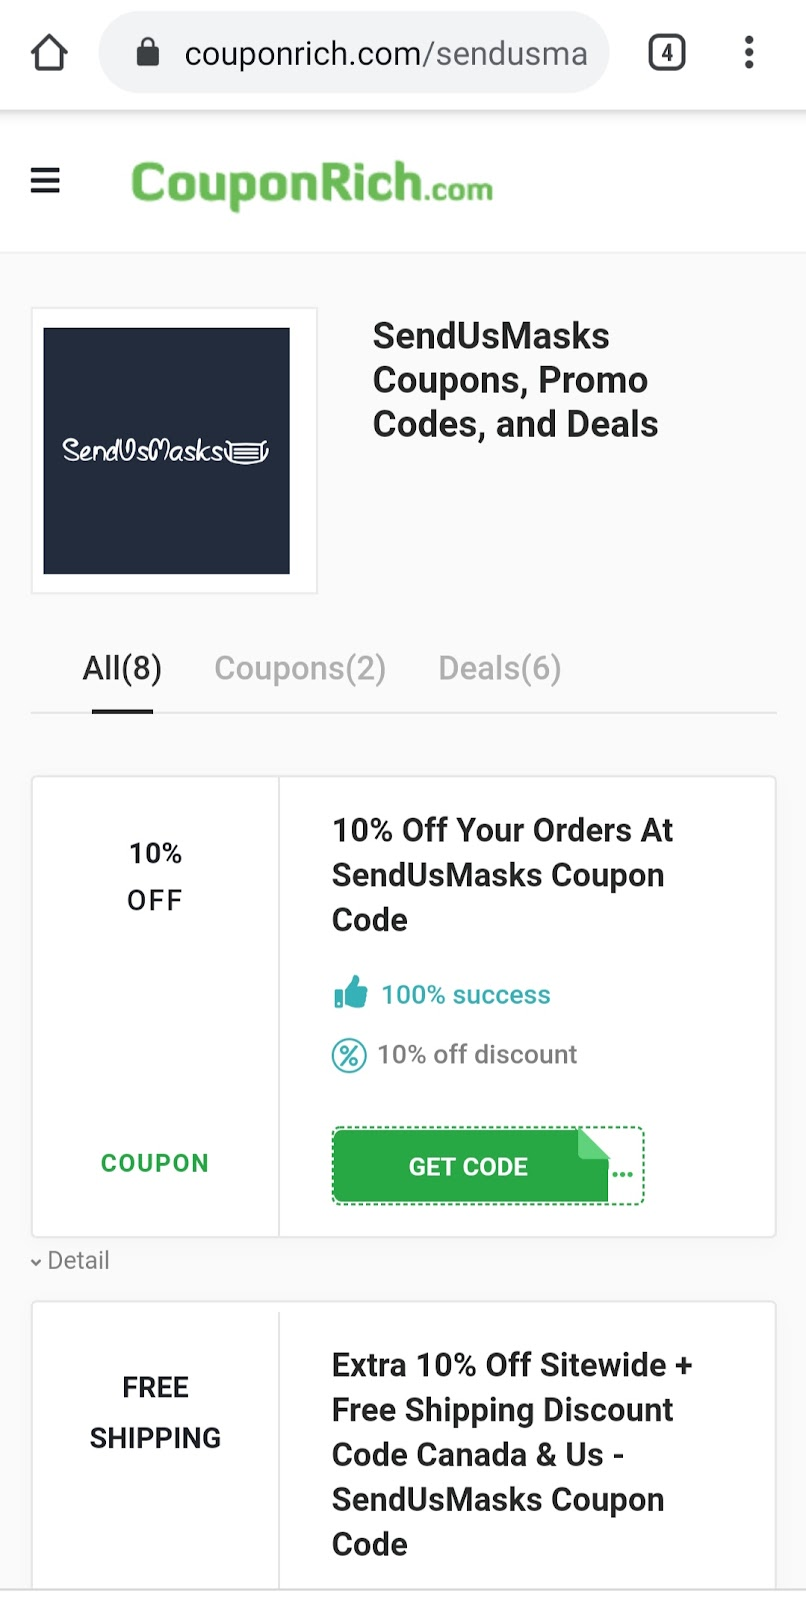 SendUsMasks coupon code